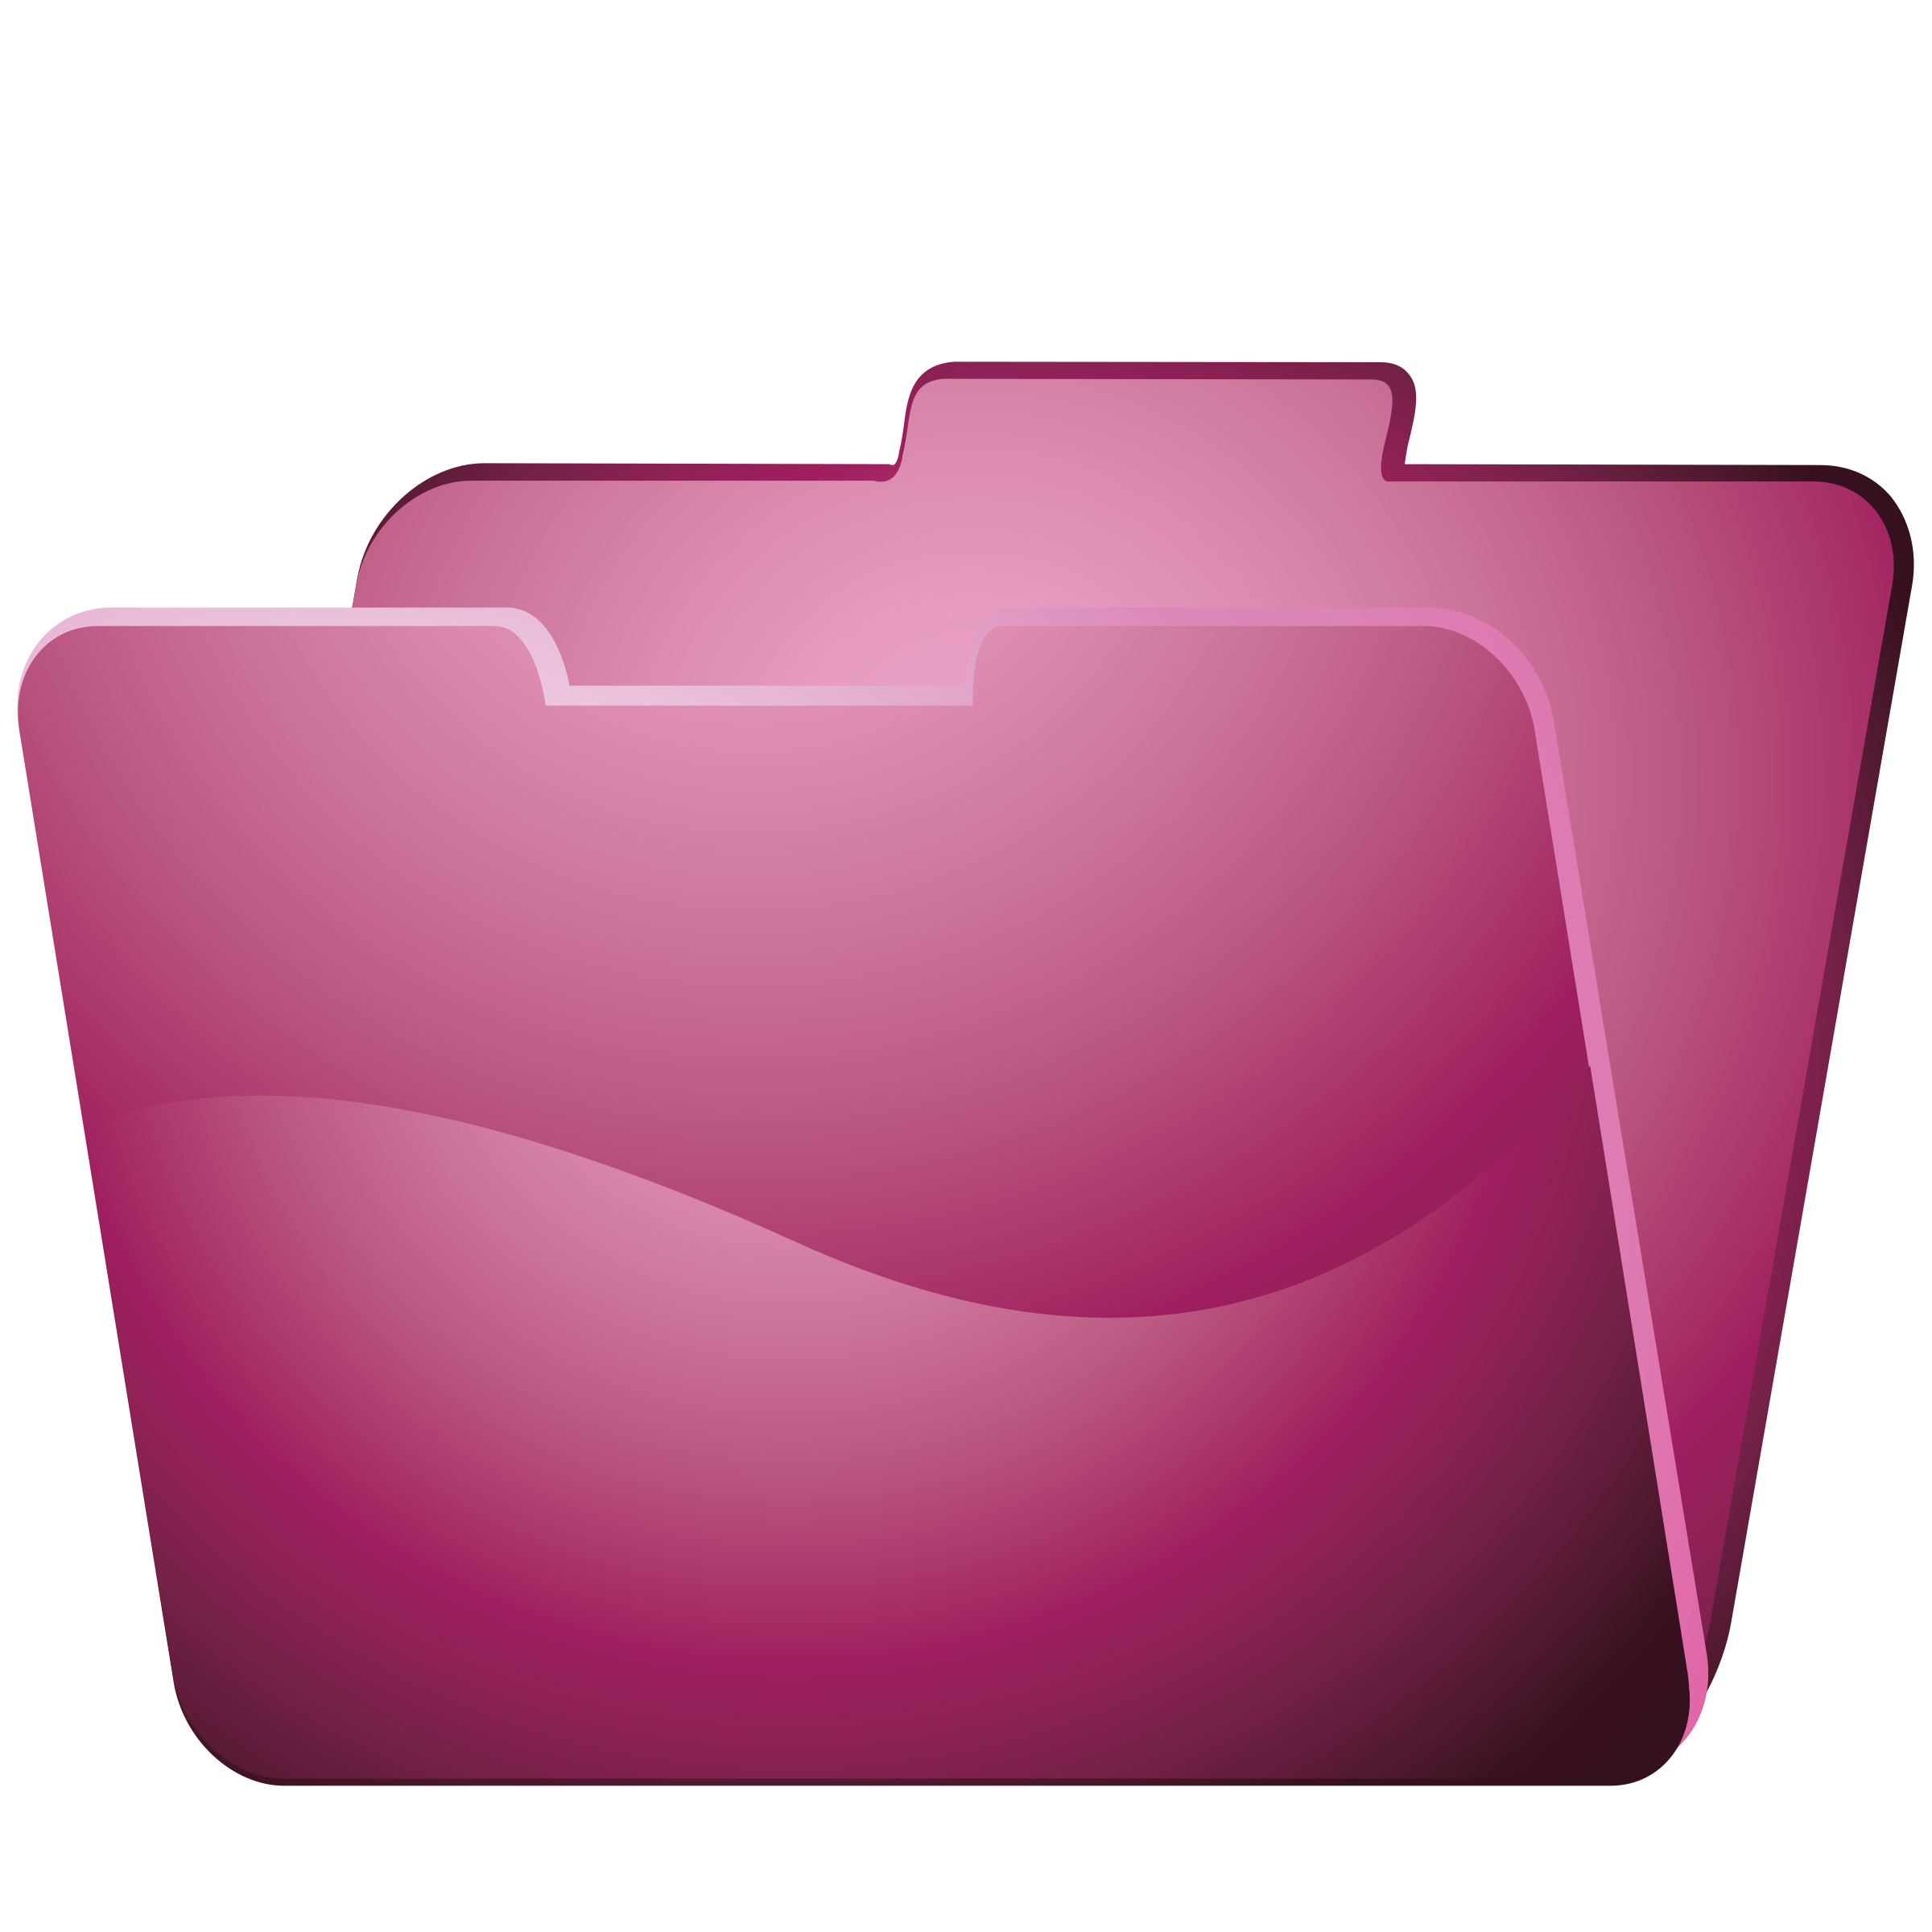 Fucsia Folder by ilnanny